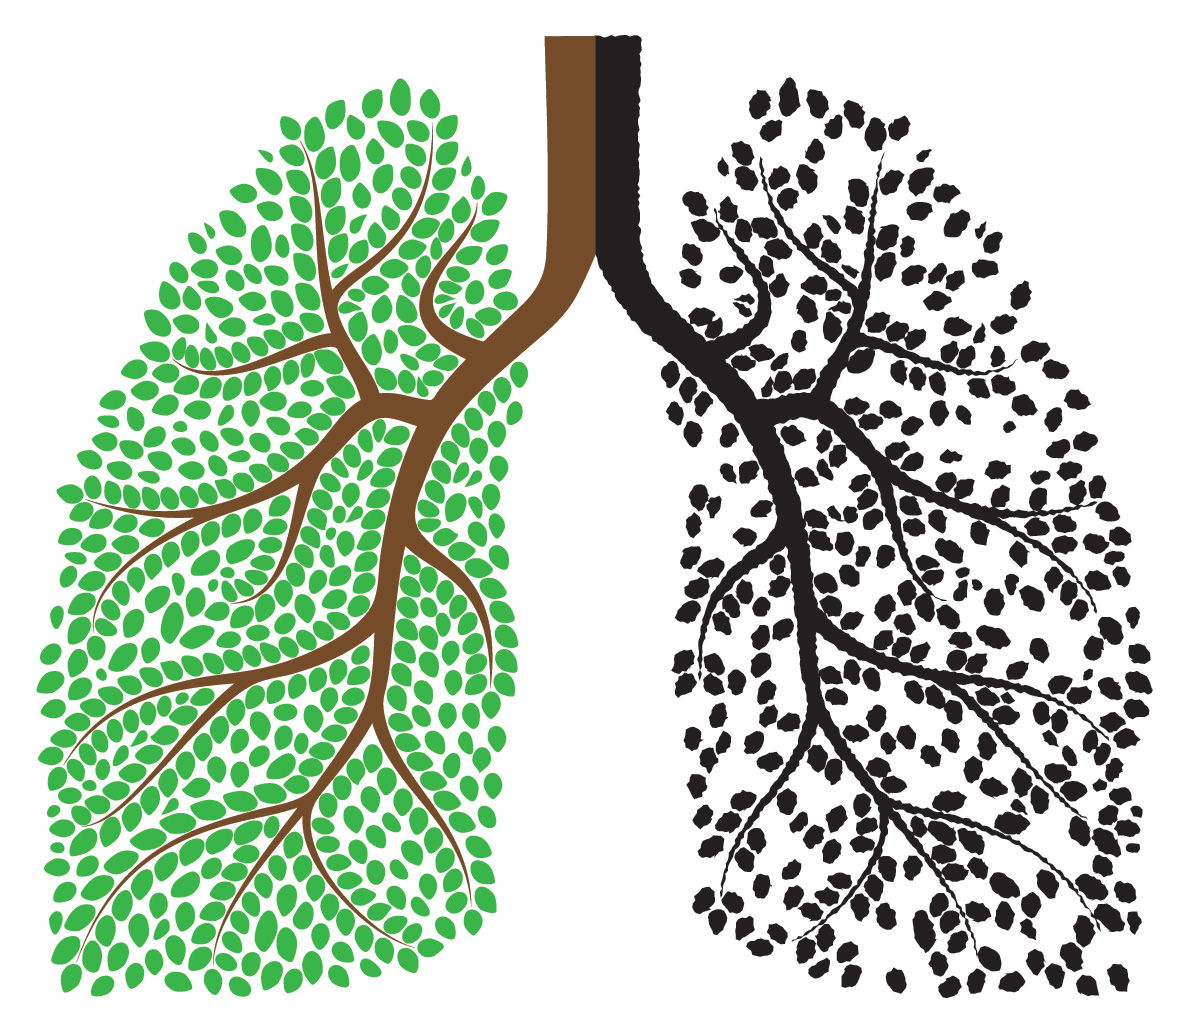 Lungs clipart bad lung. Does smoking pot cause